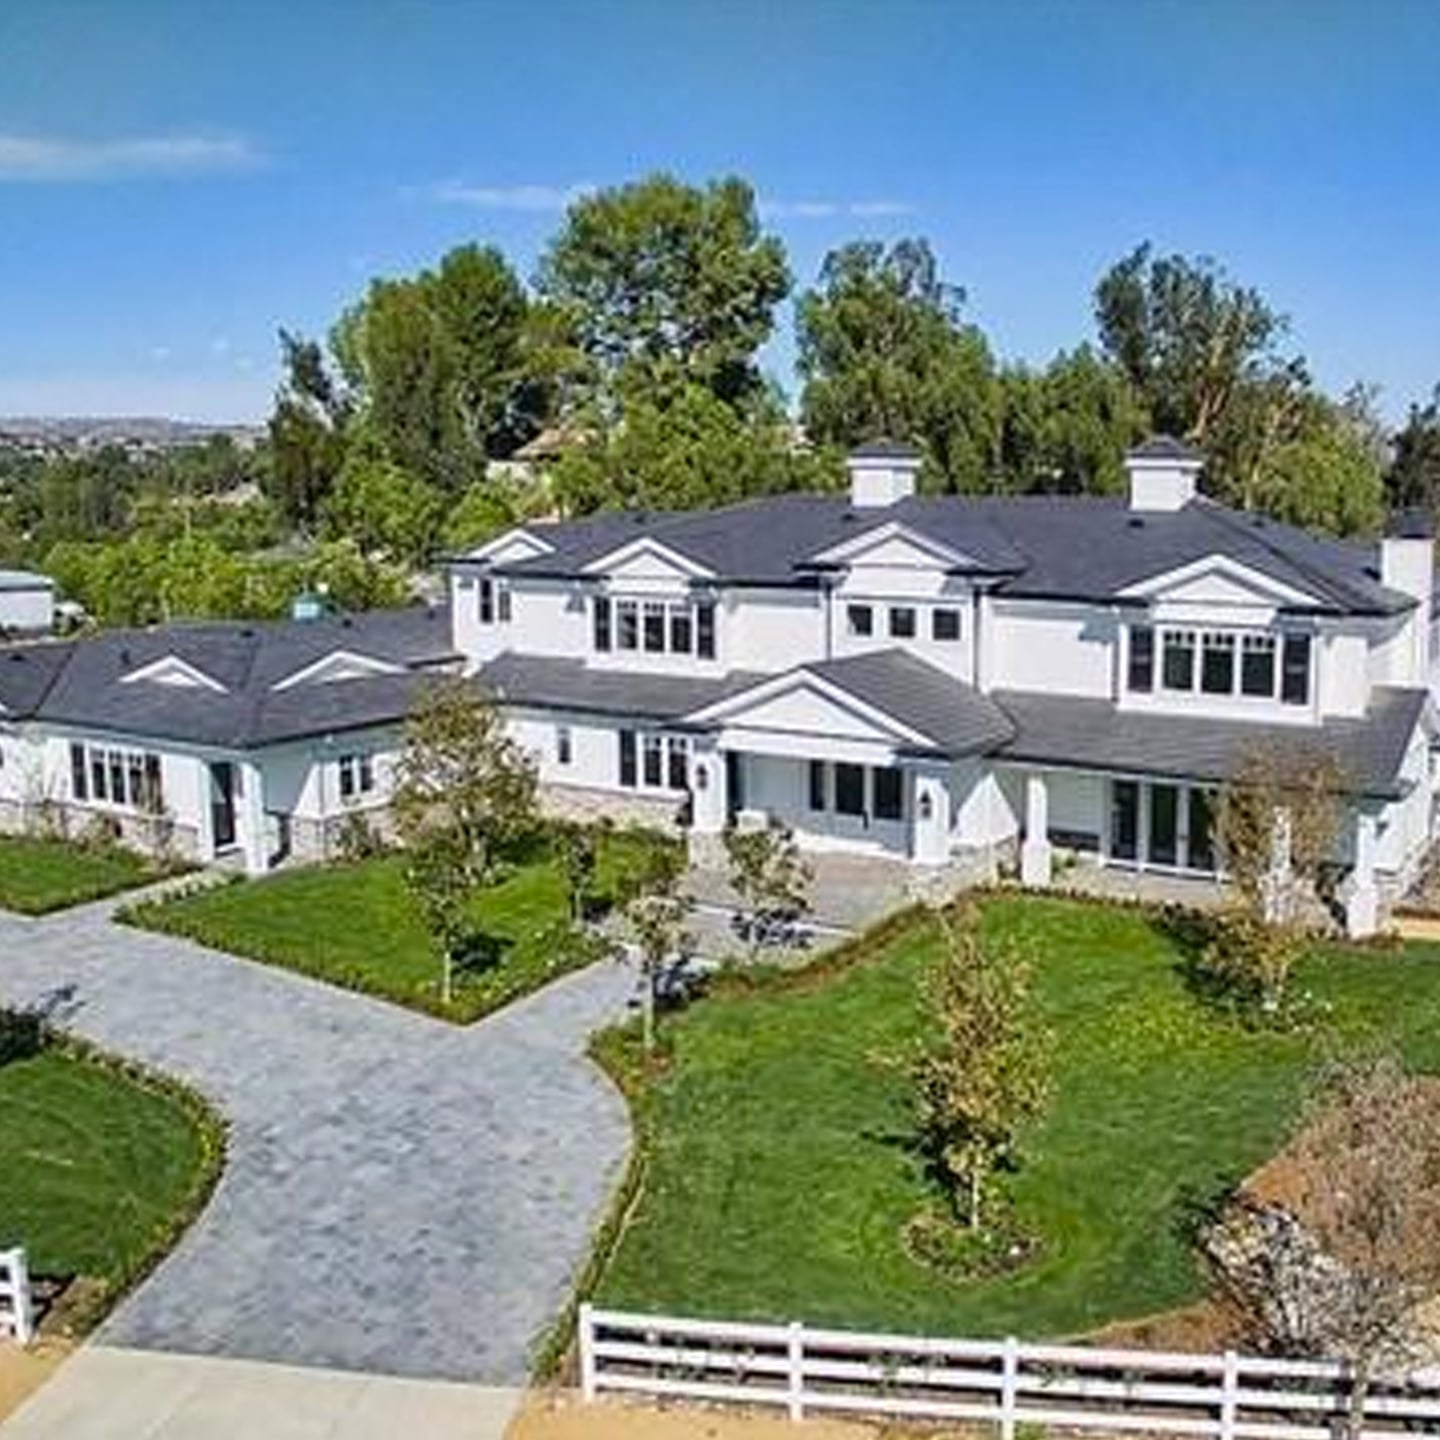 kylie jenner new house jenner 19 buys fourth california mansion at 12m 29793